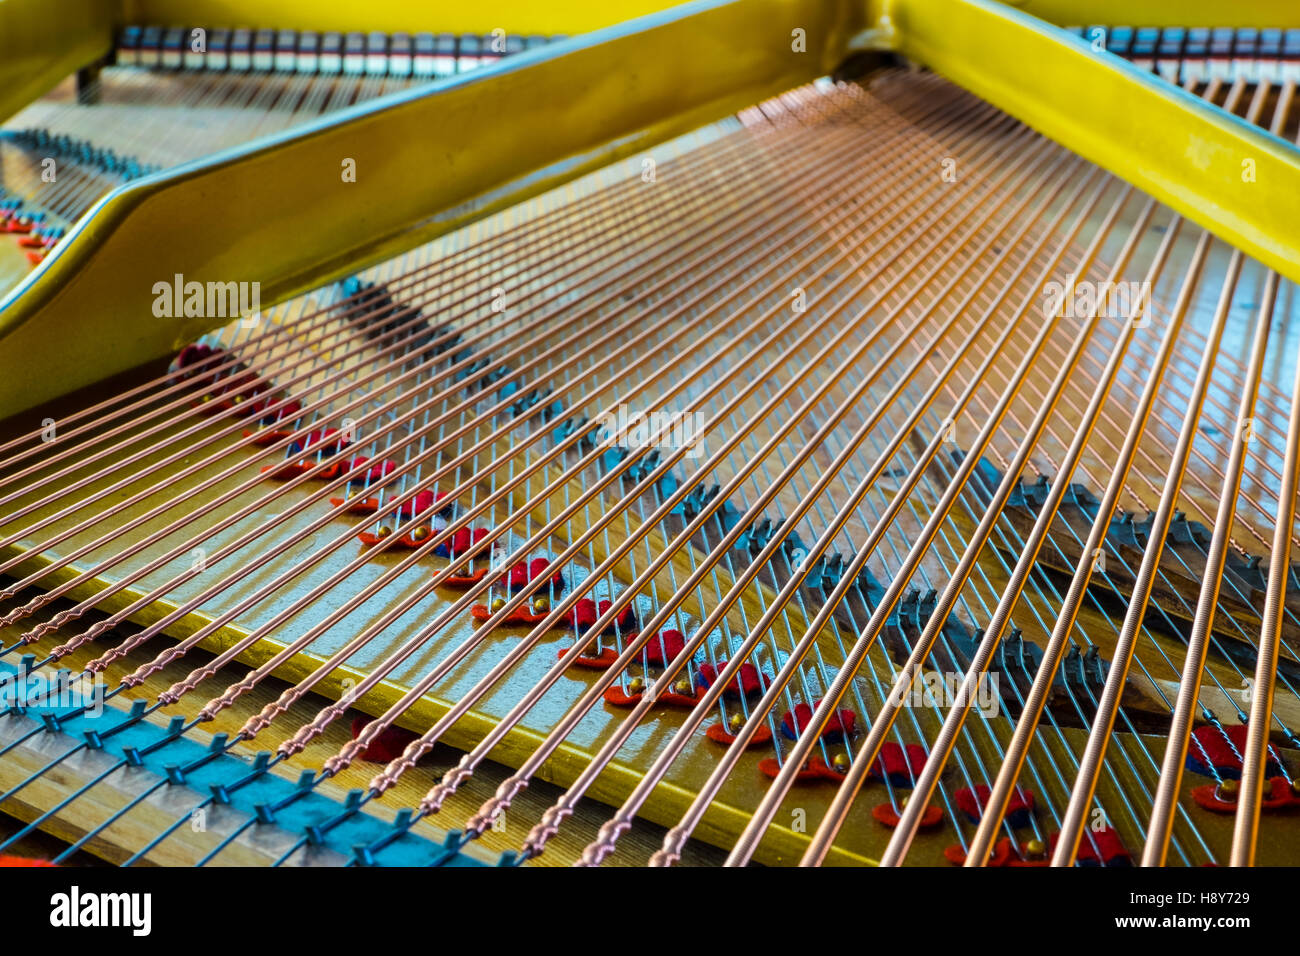 Close up of an antique grand piano showing the sounding board and strings. - Stock Image